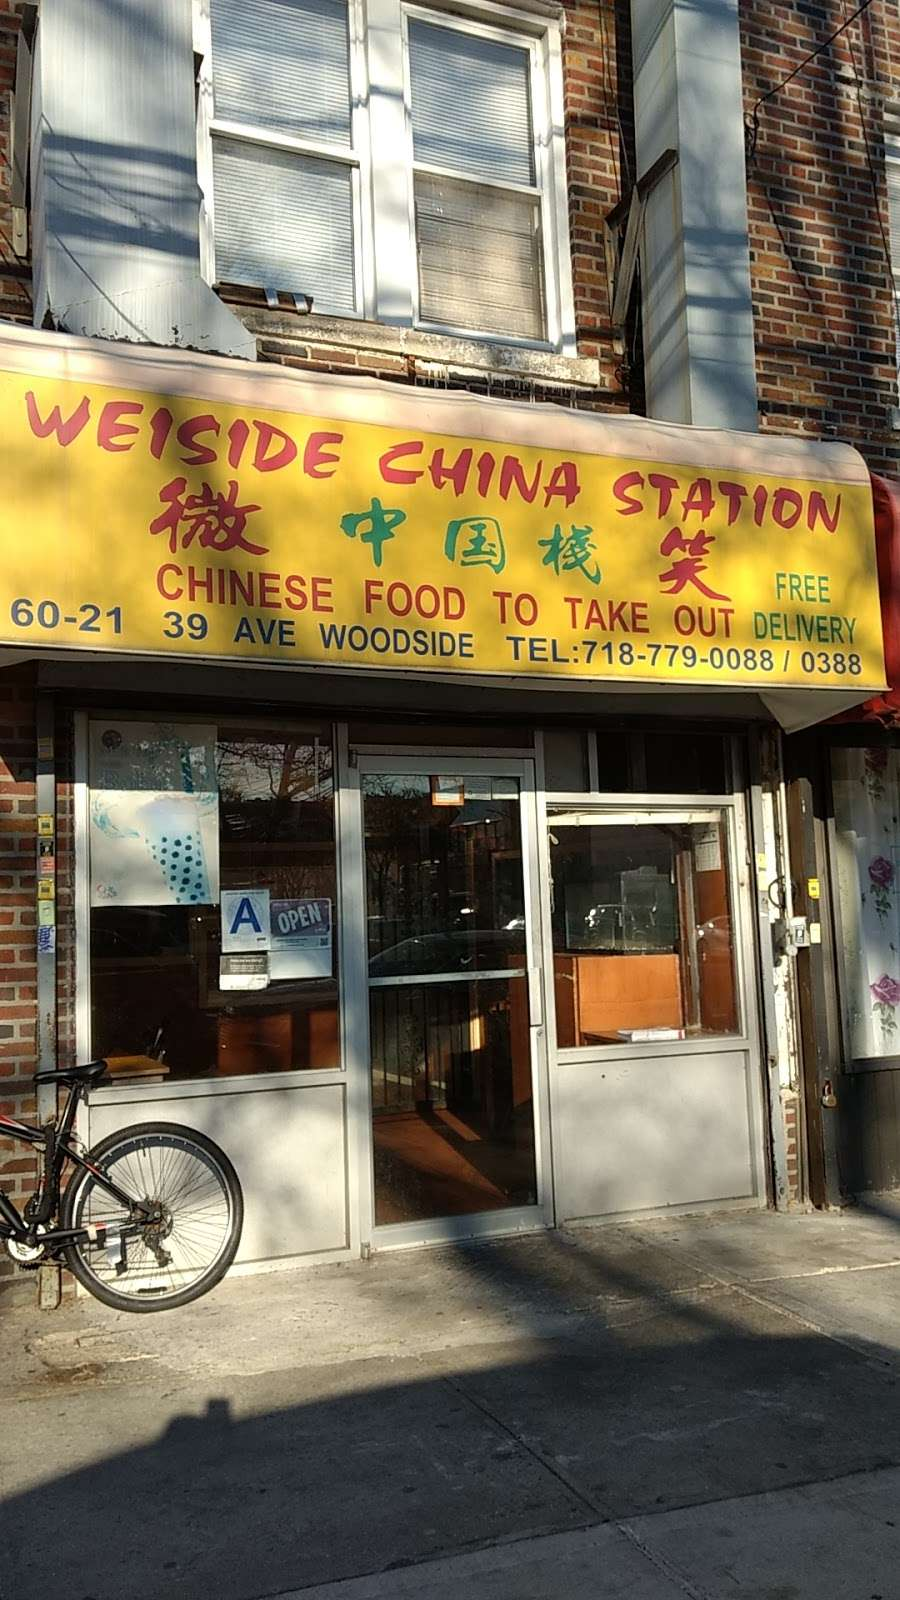 Weiside China Station - restaurant  | Photo 2 of 3 | Address: 60-21 39th Ave, Woodside, NY 11377, USA | Phone: (718) 779-0088